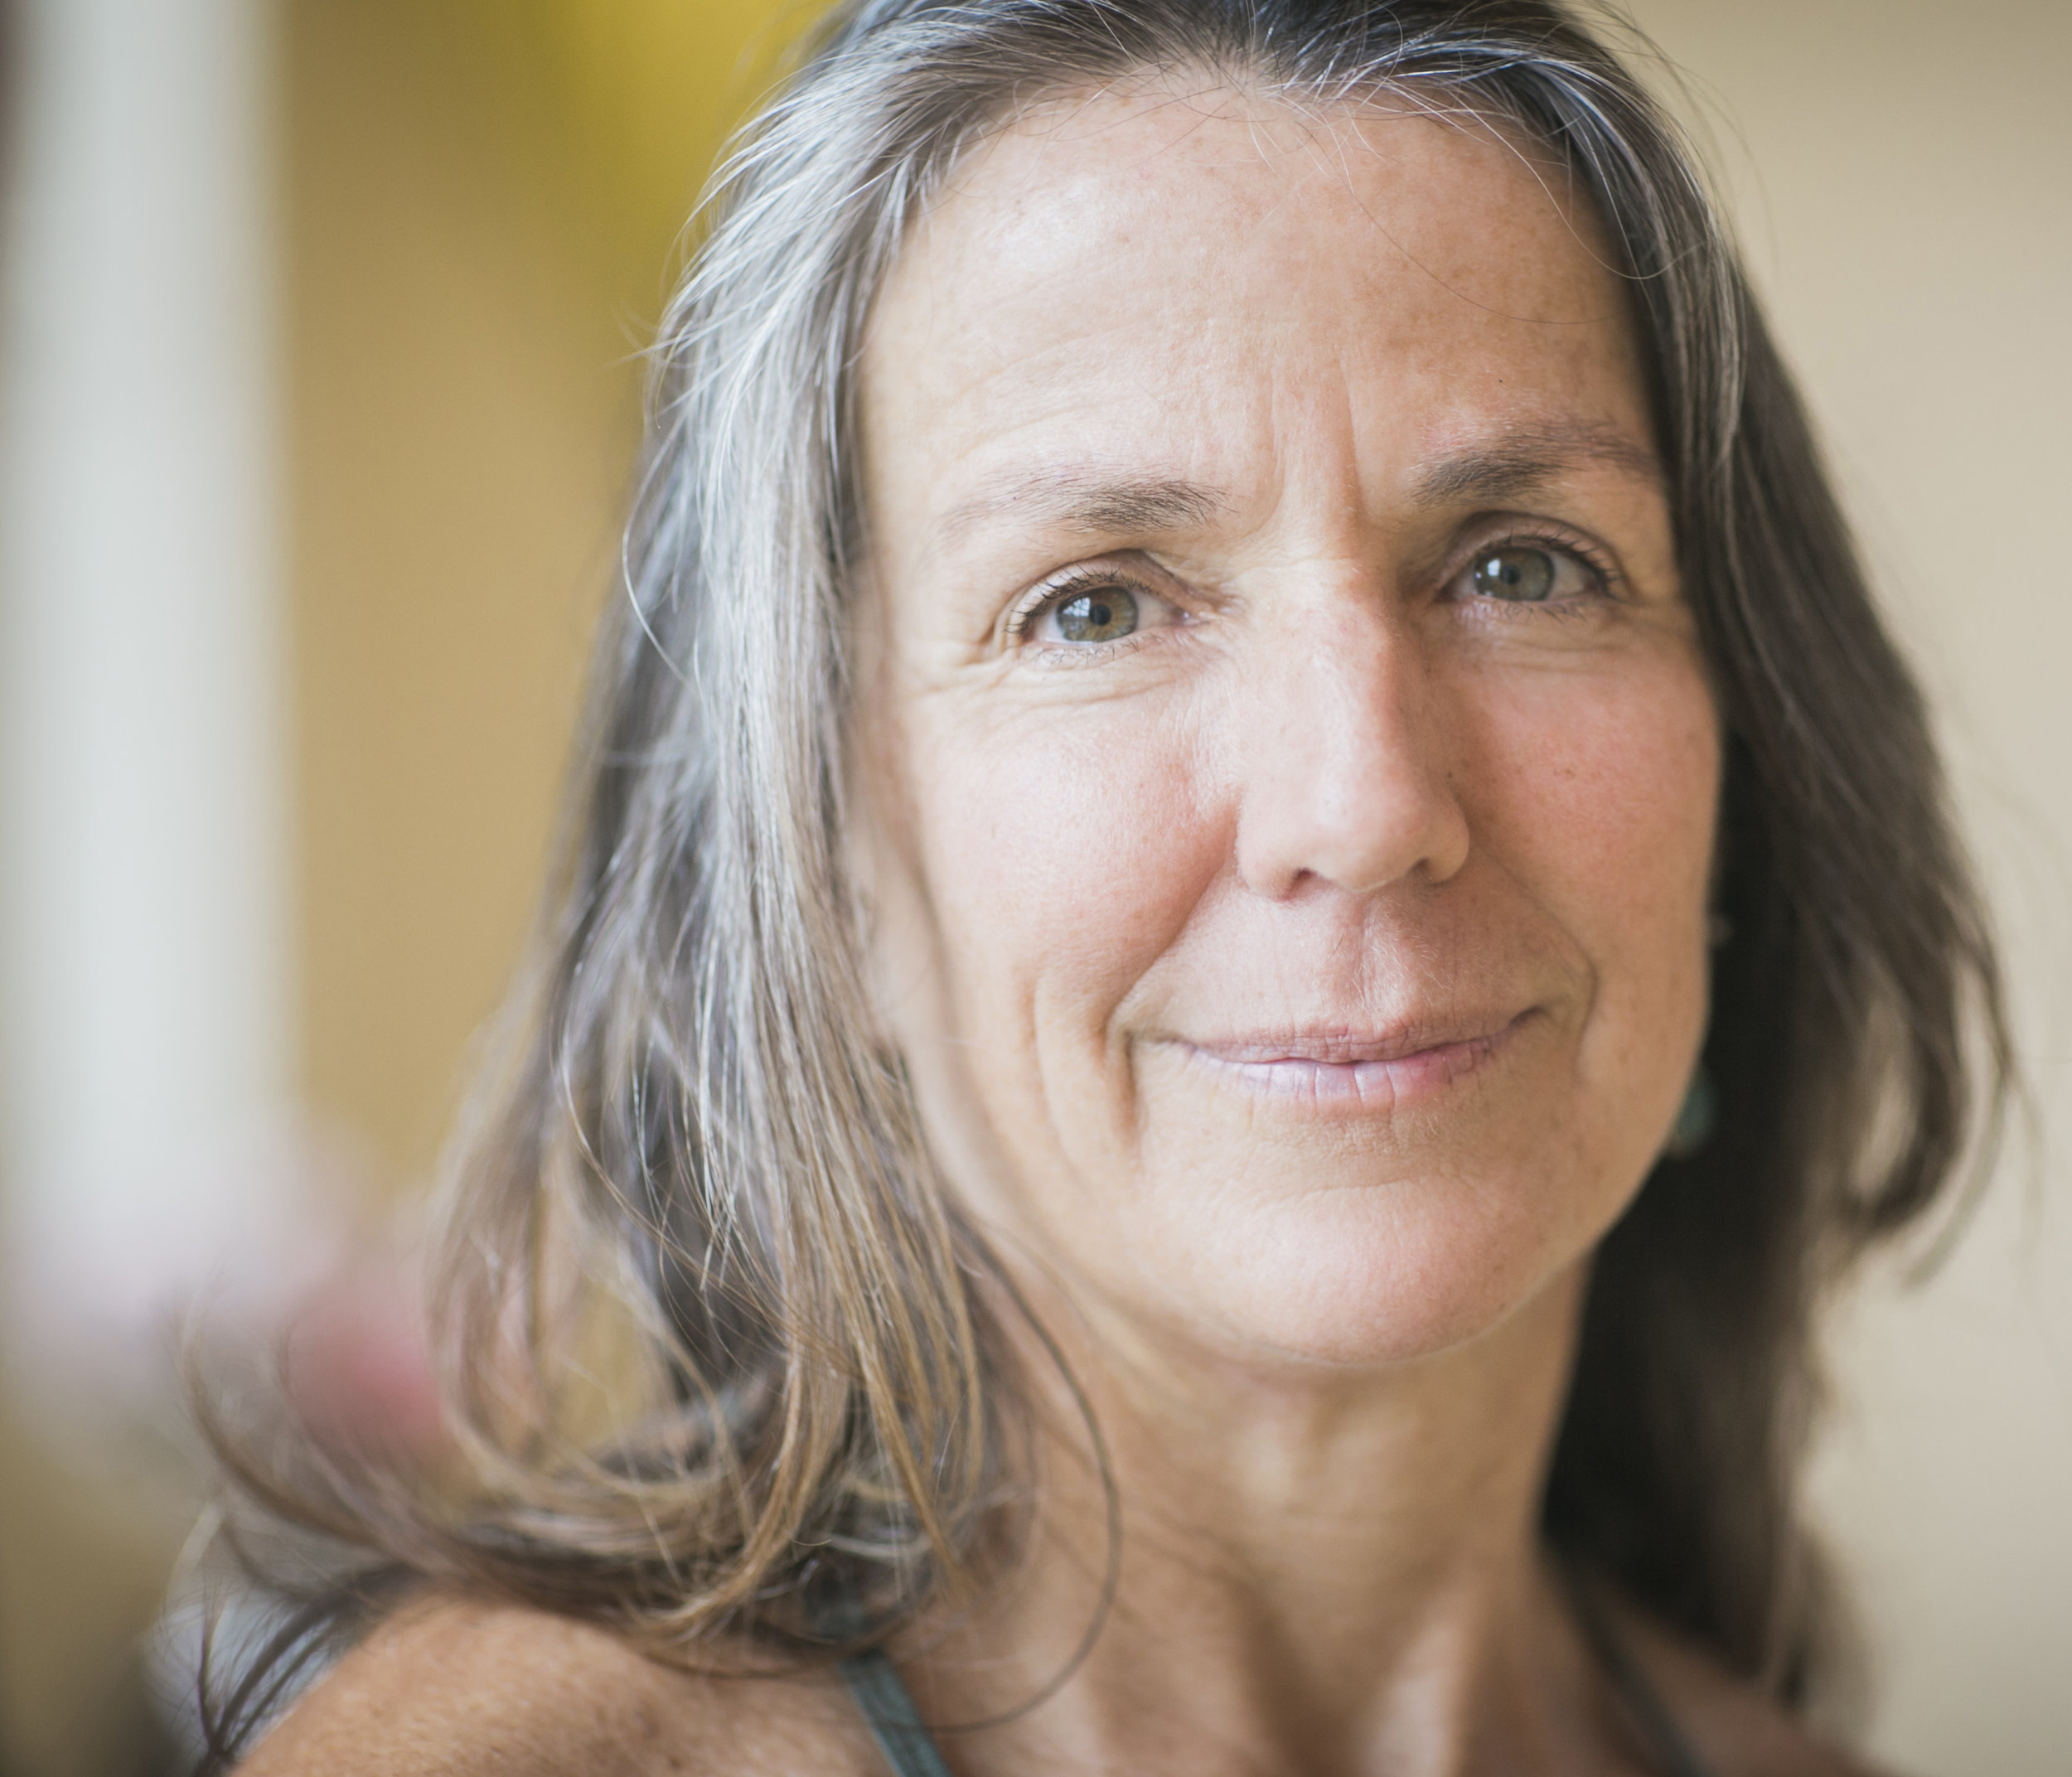 Peggy Profant - Peggy Profant, E-RYT 500, and Certified Anusara Yoga Teacher, Is on a lifelong path of yoga and taking its insightful teachings into all areas of her life. She first discovered the practice in 1980 and began teaching it to others in 1997. Ashtanga, Iyengar and Anusara are the schools in which have influenced her practice. As one who lives courageously from her heart, she passionately teaches her classes with meaningful yogic themes while keeping a keen attention to alignment. In addition to yoga, being in nature and with her family is where she finds her deepest joy and peace. Peggy is the founder and previous owner of Om Shala Yoga in Arcata and has been leading workshops, retreats and trainings since 2003.